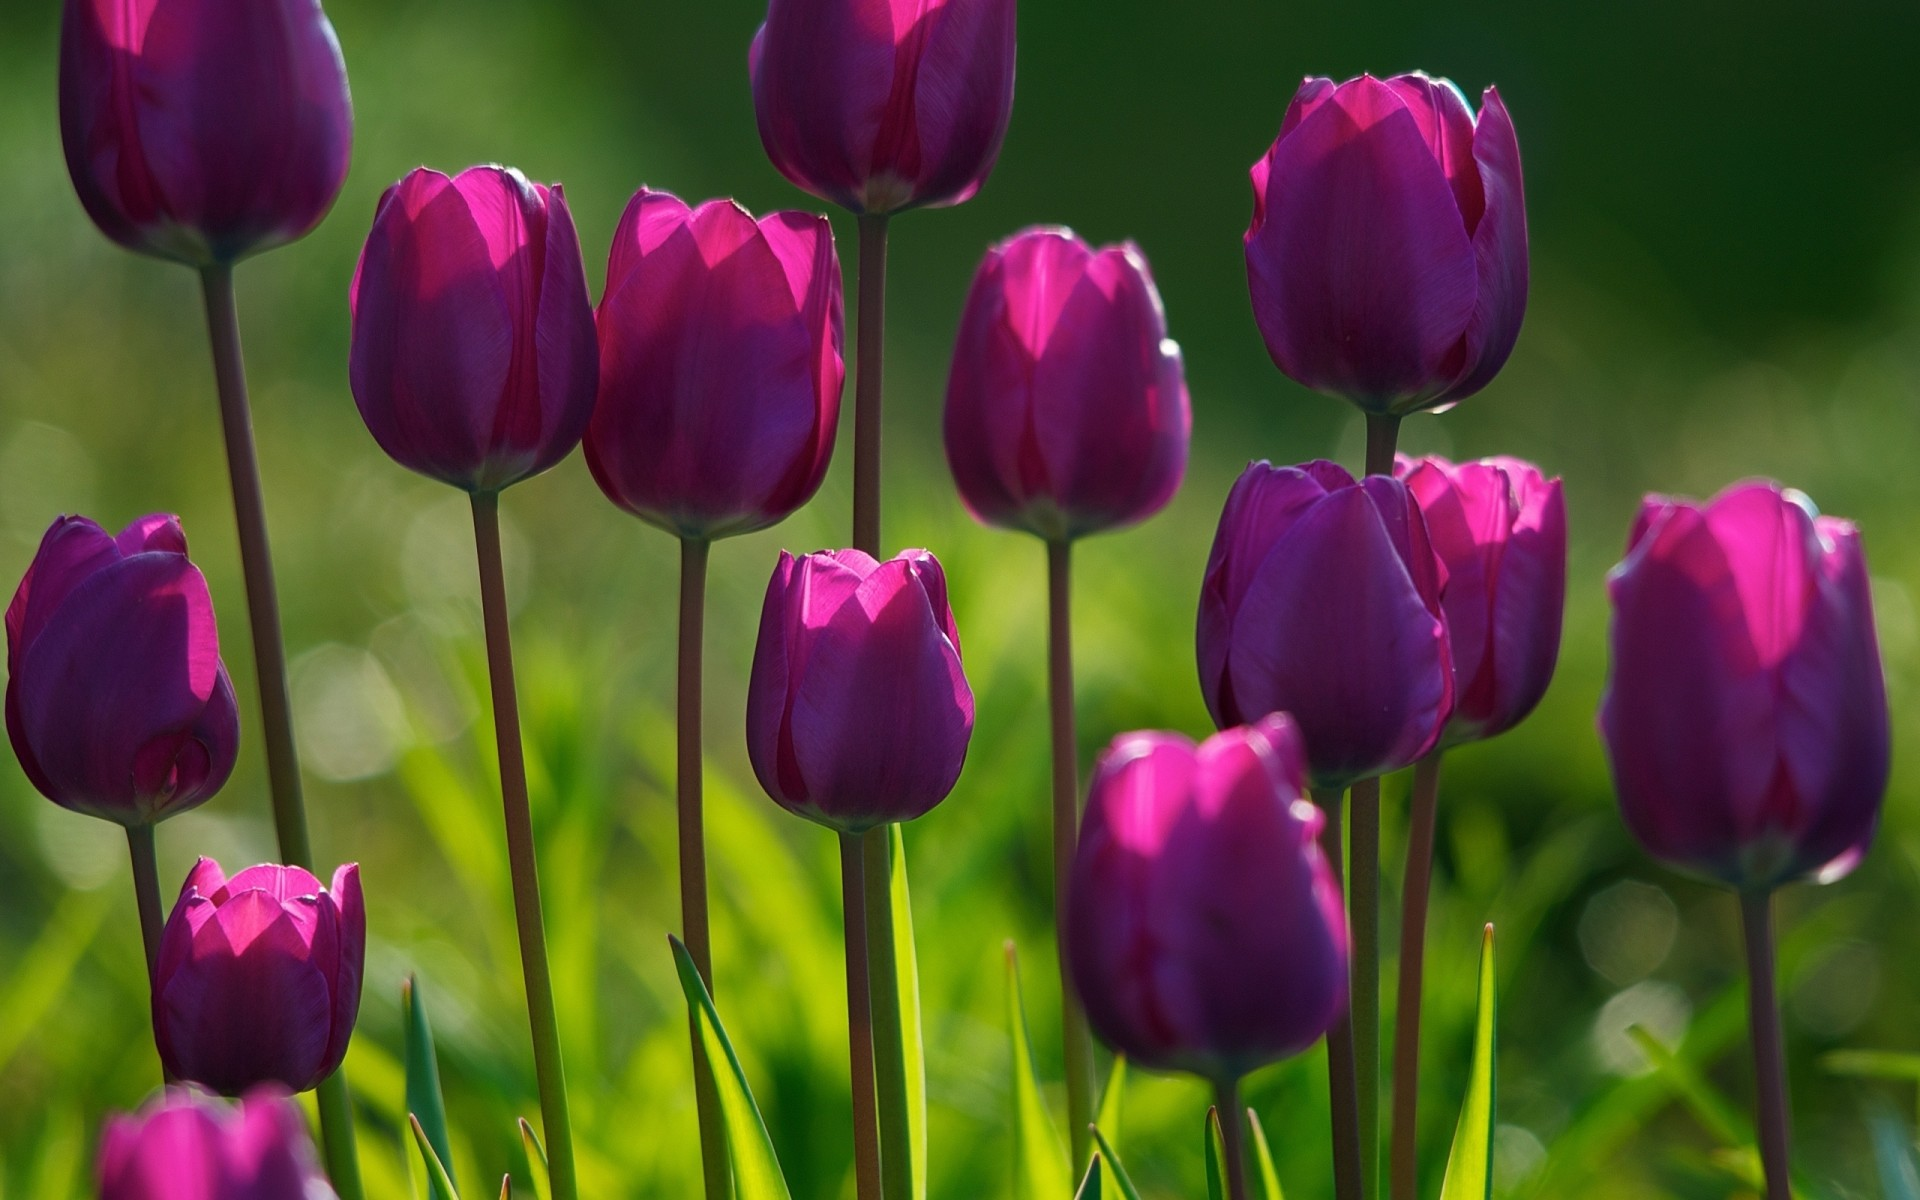 Spring Tulips Wallpaper (61+ Images